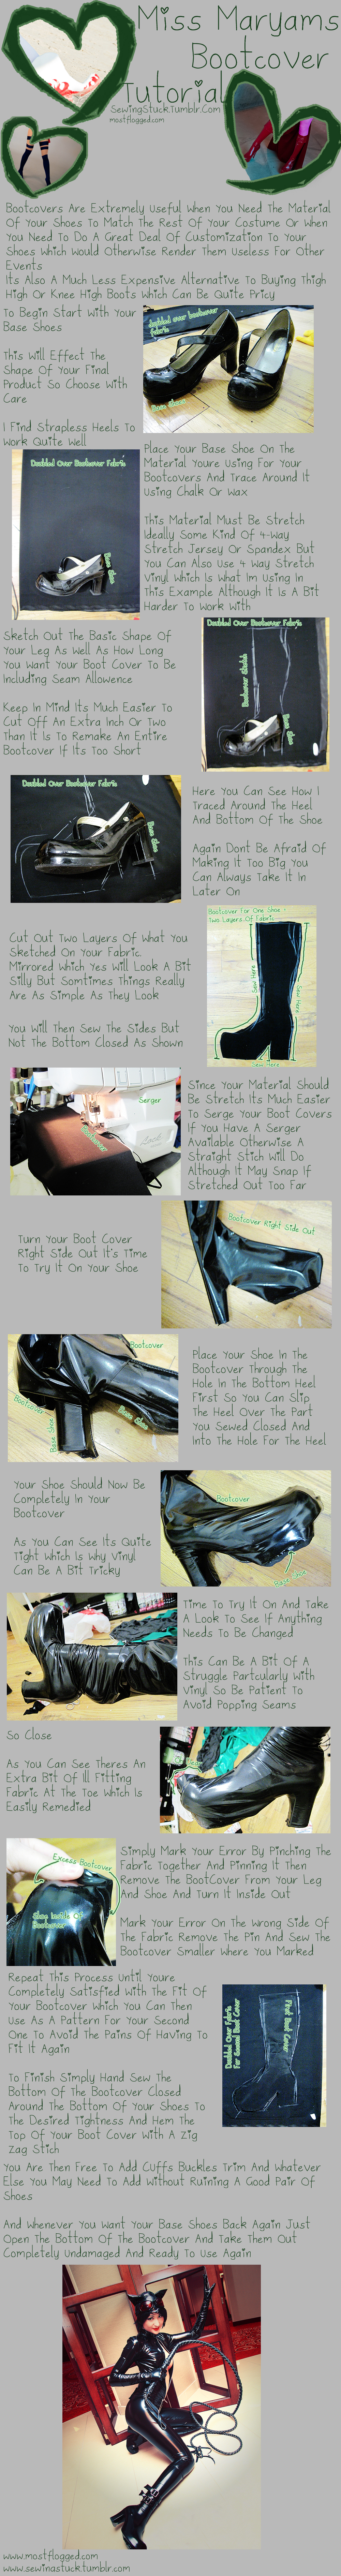 Sewingstuck - Bootcover Tutorial